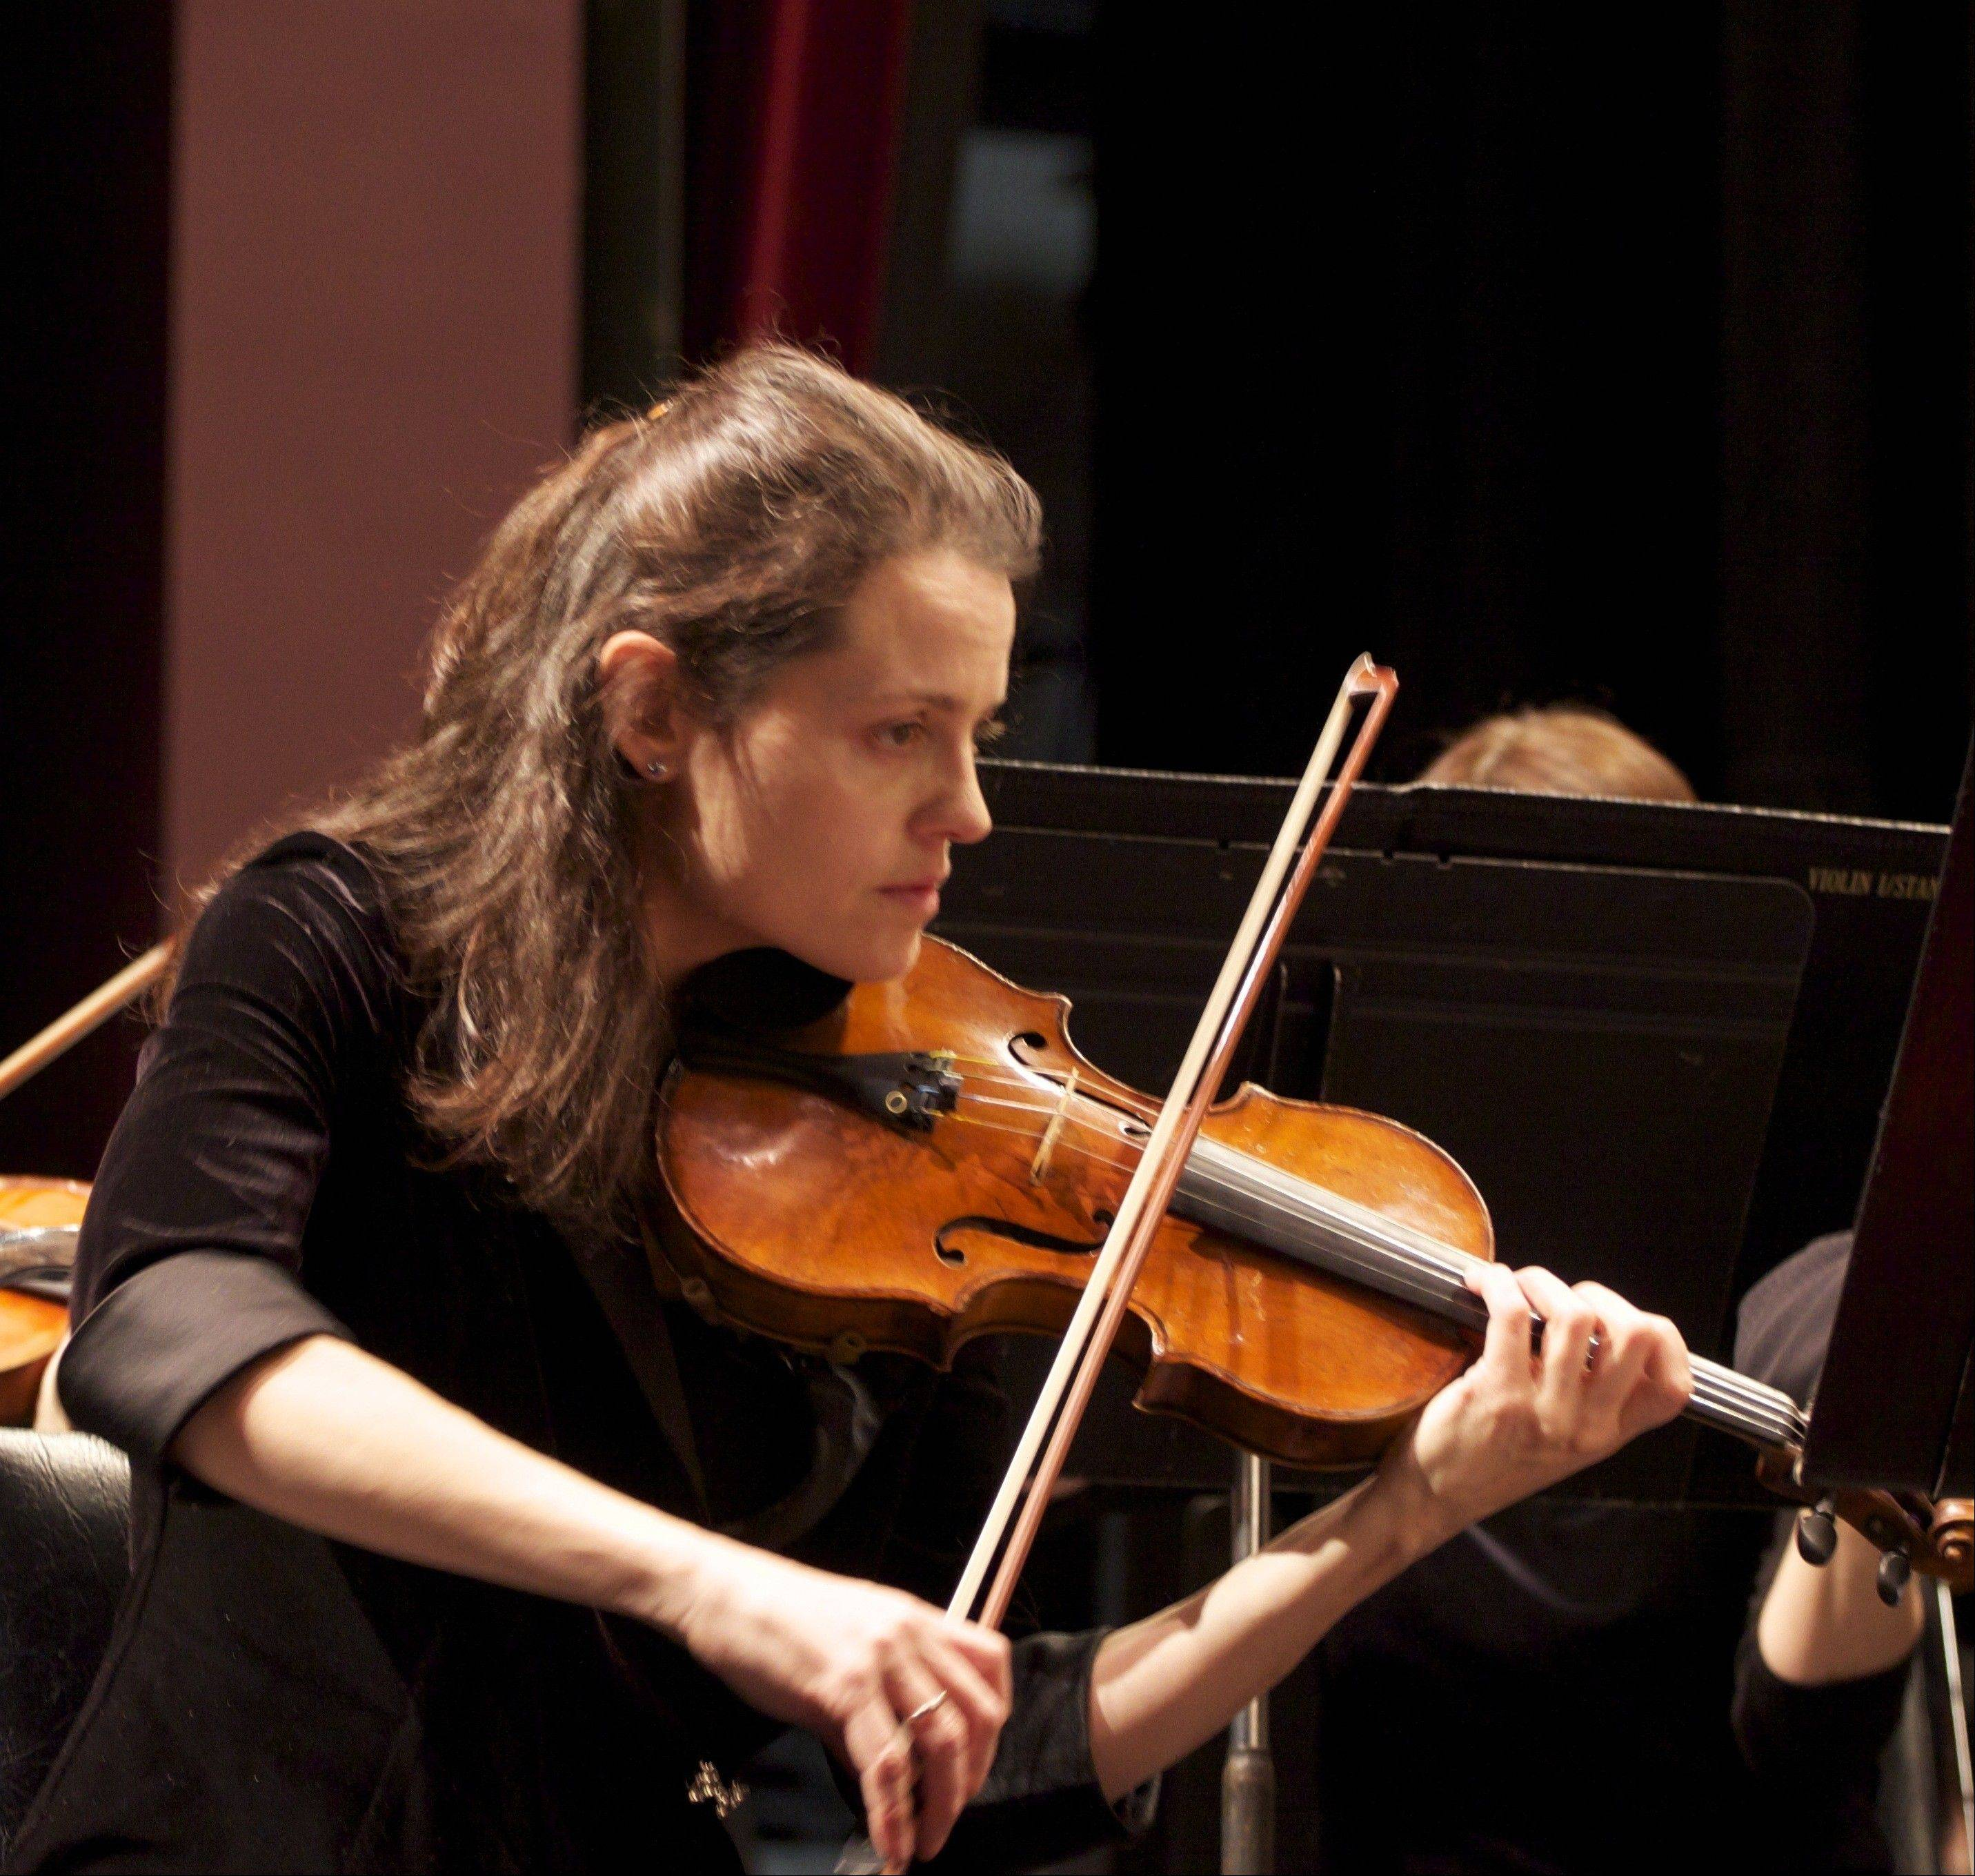 Violin soloist Isabella Lippi performs with the Elgin Symphony Orchestra at the Hemmens Cultural Center in Elgin on Saturday and Sunday, May 4-5.